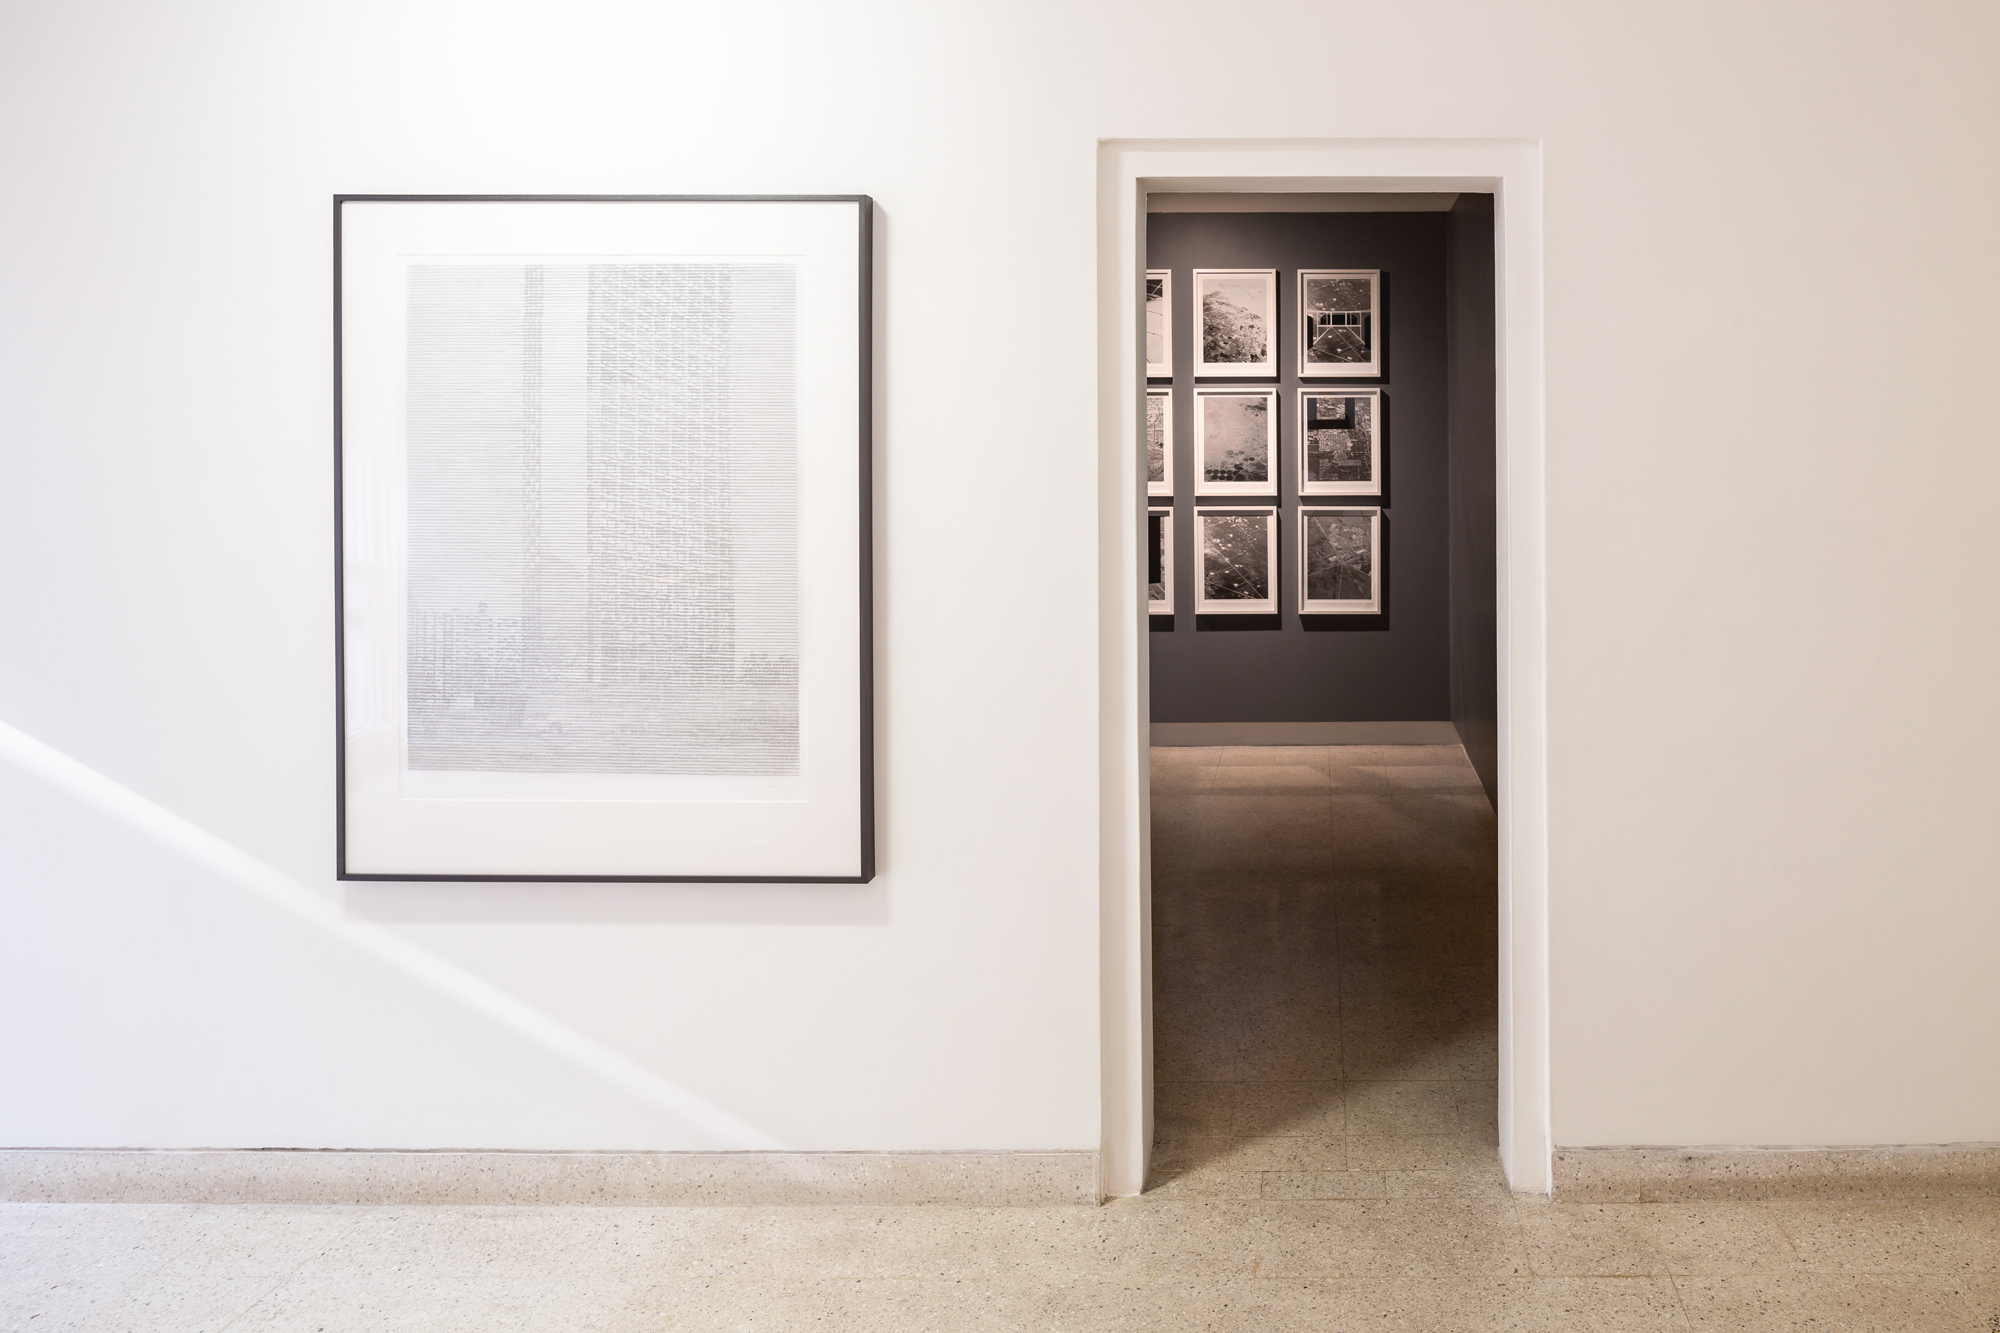 """Seher Shah, """"Of Absence and Weight"""", 21 December 2016 – 11 February 2017, Nature Morte, New Delhi. Image courtesy Randhir Singh for Nature Morte."""